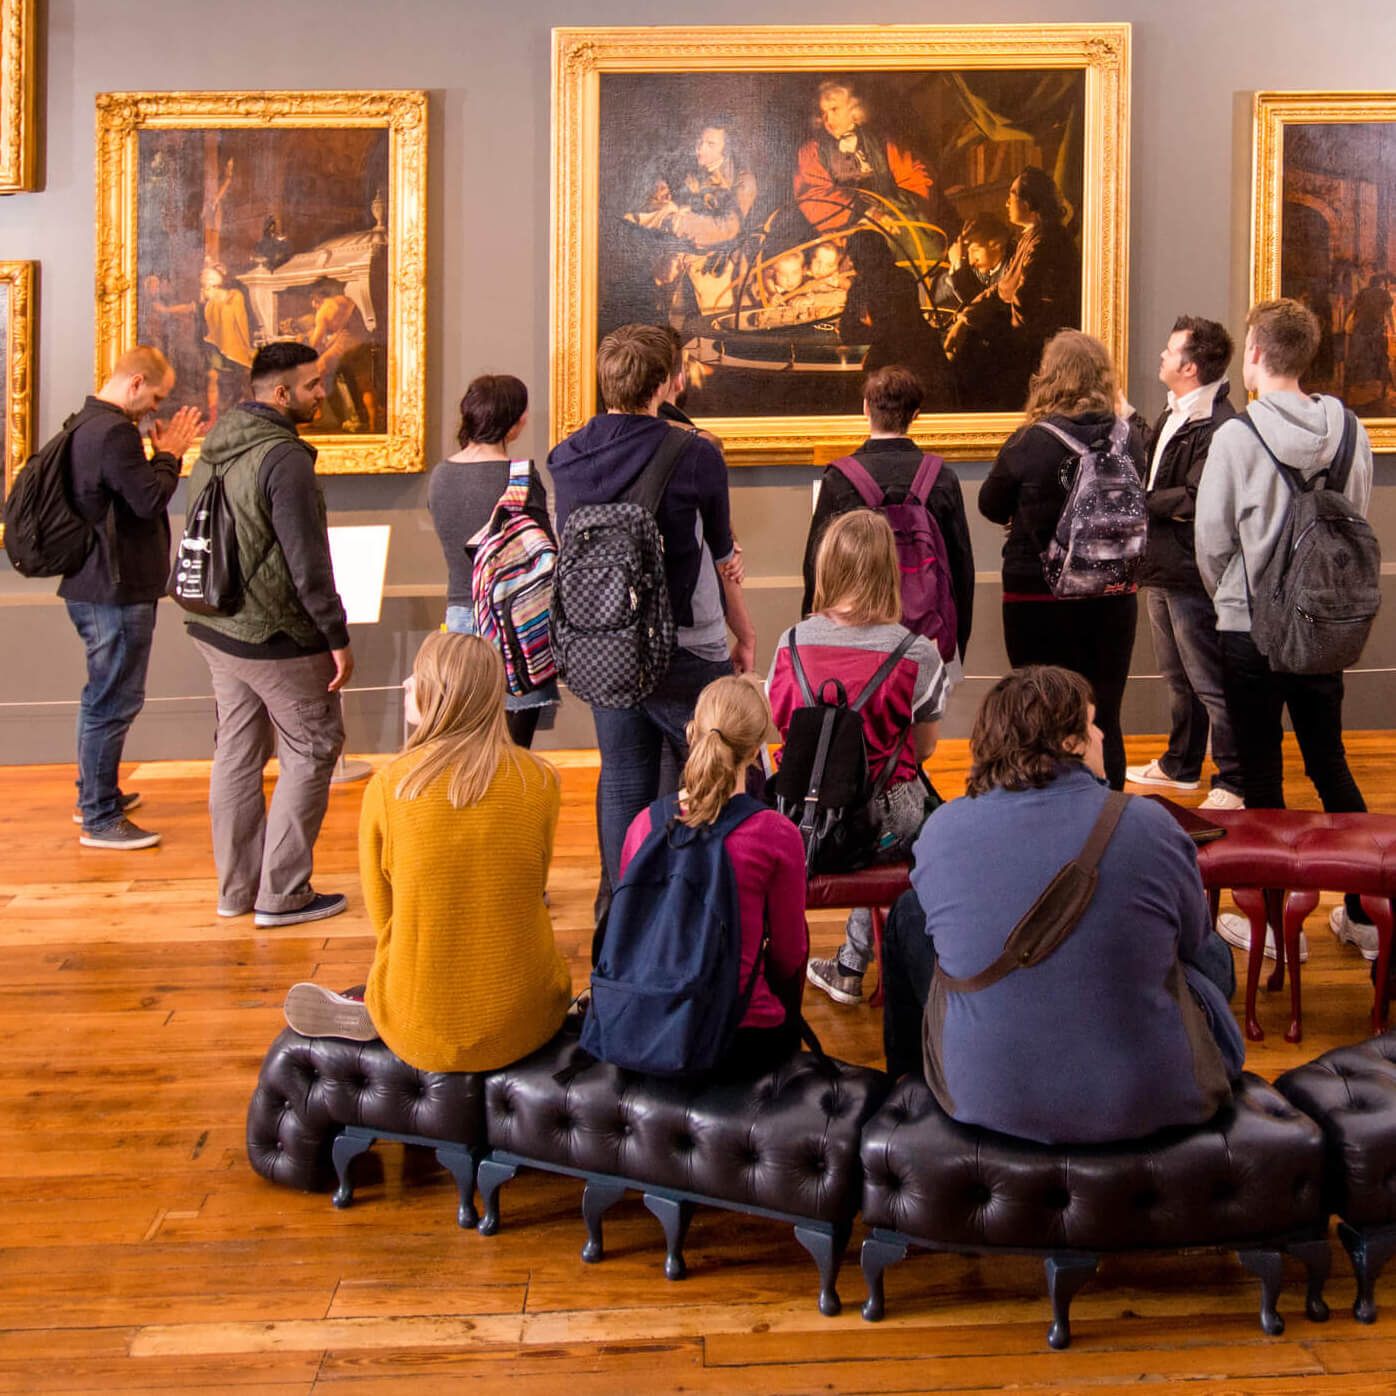 Visitors to Derby Museum and Gallery looking at Joseph Wright's painting A Philosopher Lecturing on the Orrery